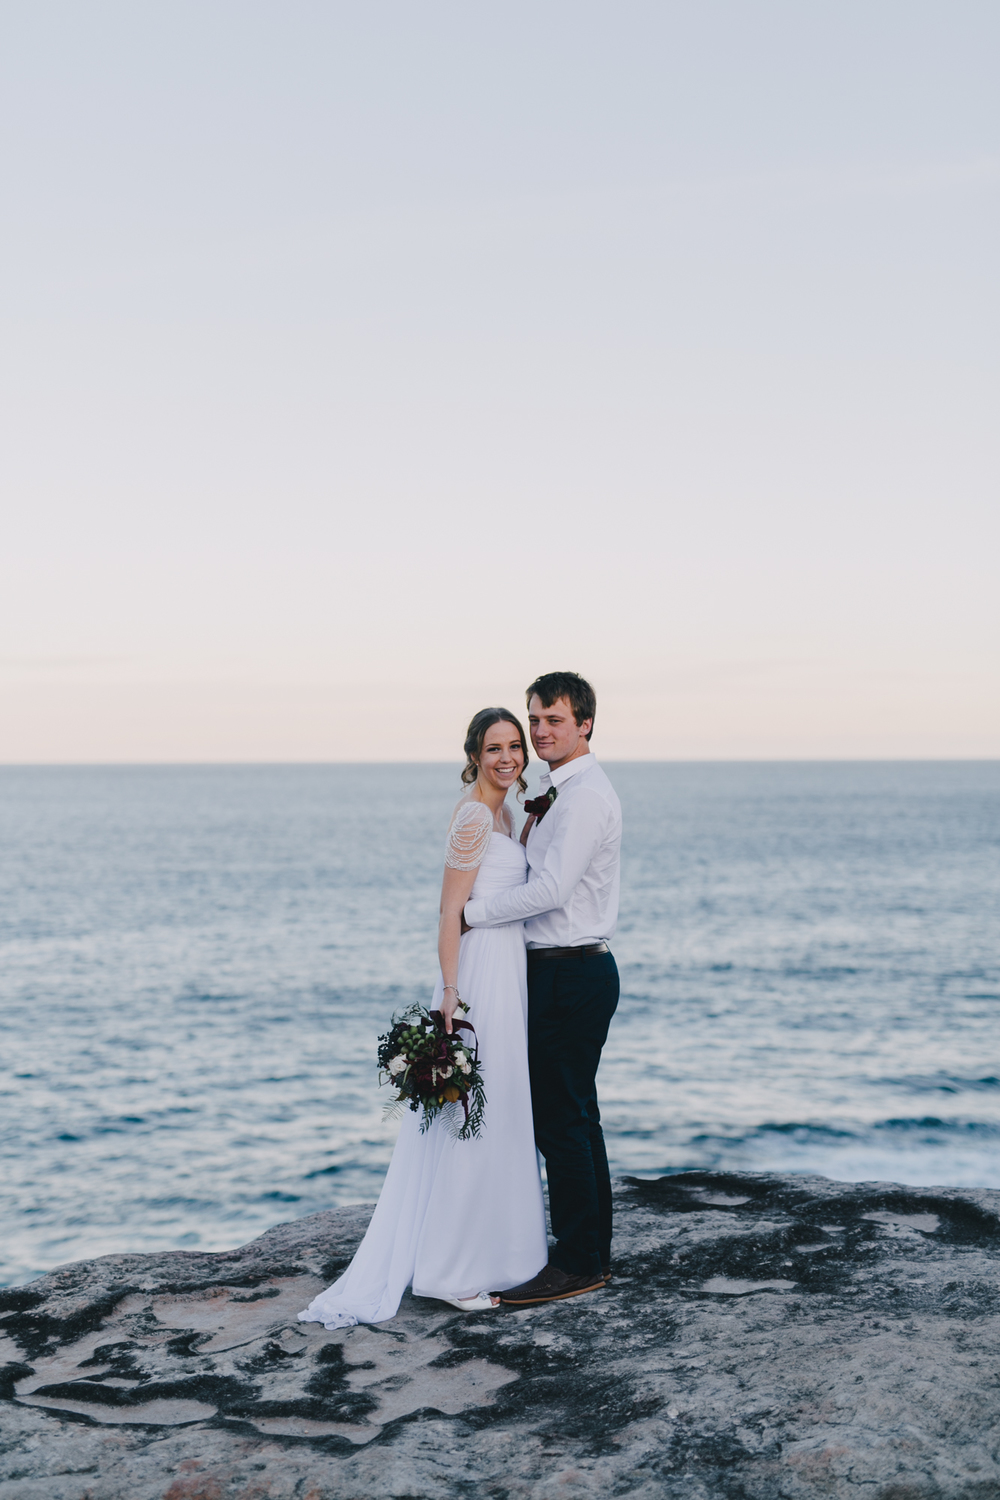 Sam & Leah - Coastal, Kurnell, Winter Wedding-147.jpg